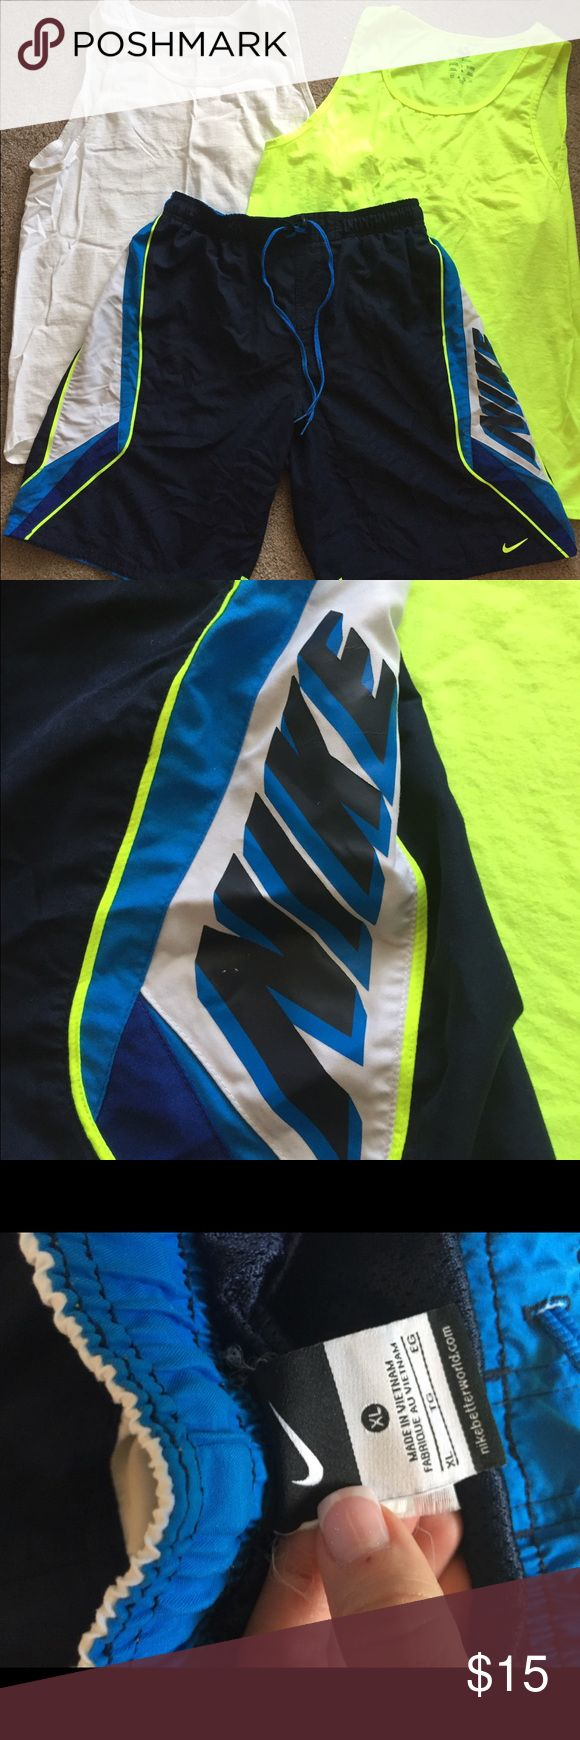 Nike Men's Swim trunks and 2 tanks Great condition but doesn't fit anymore.  Trunks are XL and tanks are L Nike Swim Swim Trunks